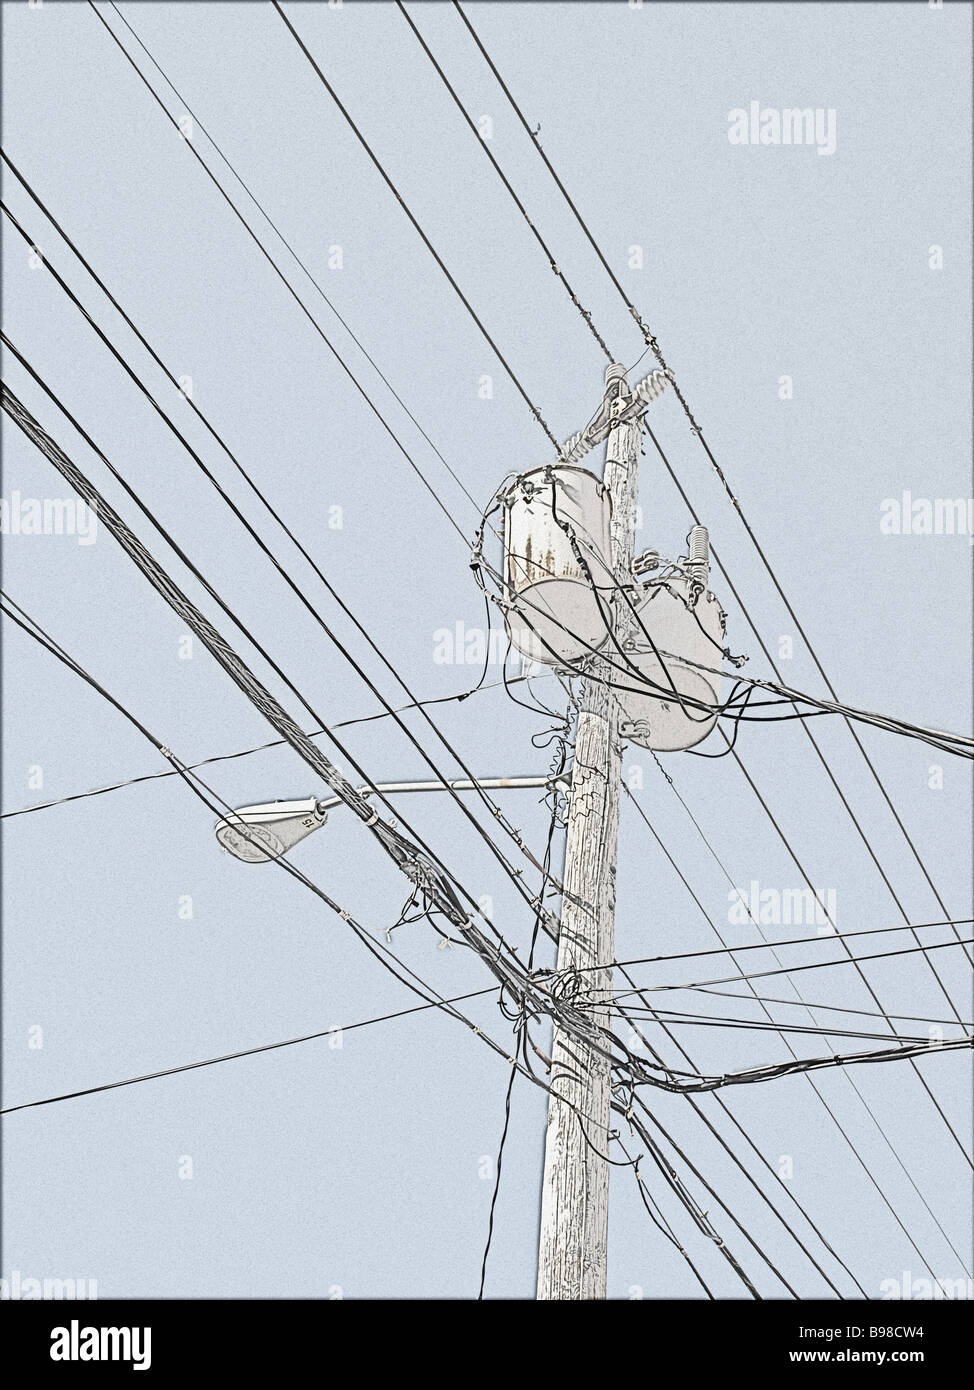 utility pole with generator street lamp and wires in a drawing ...